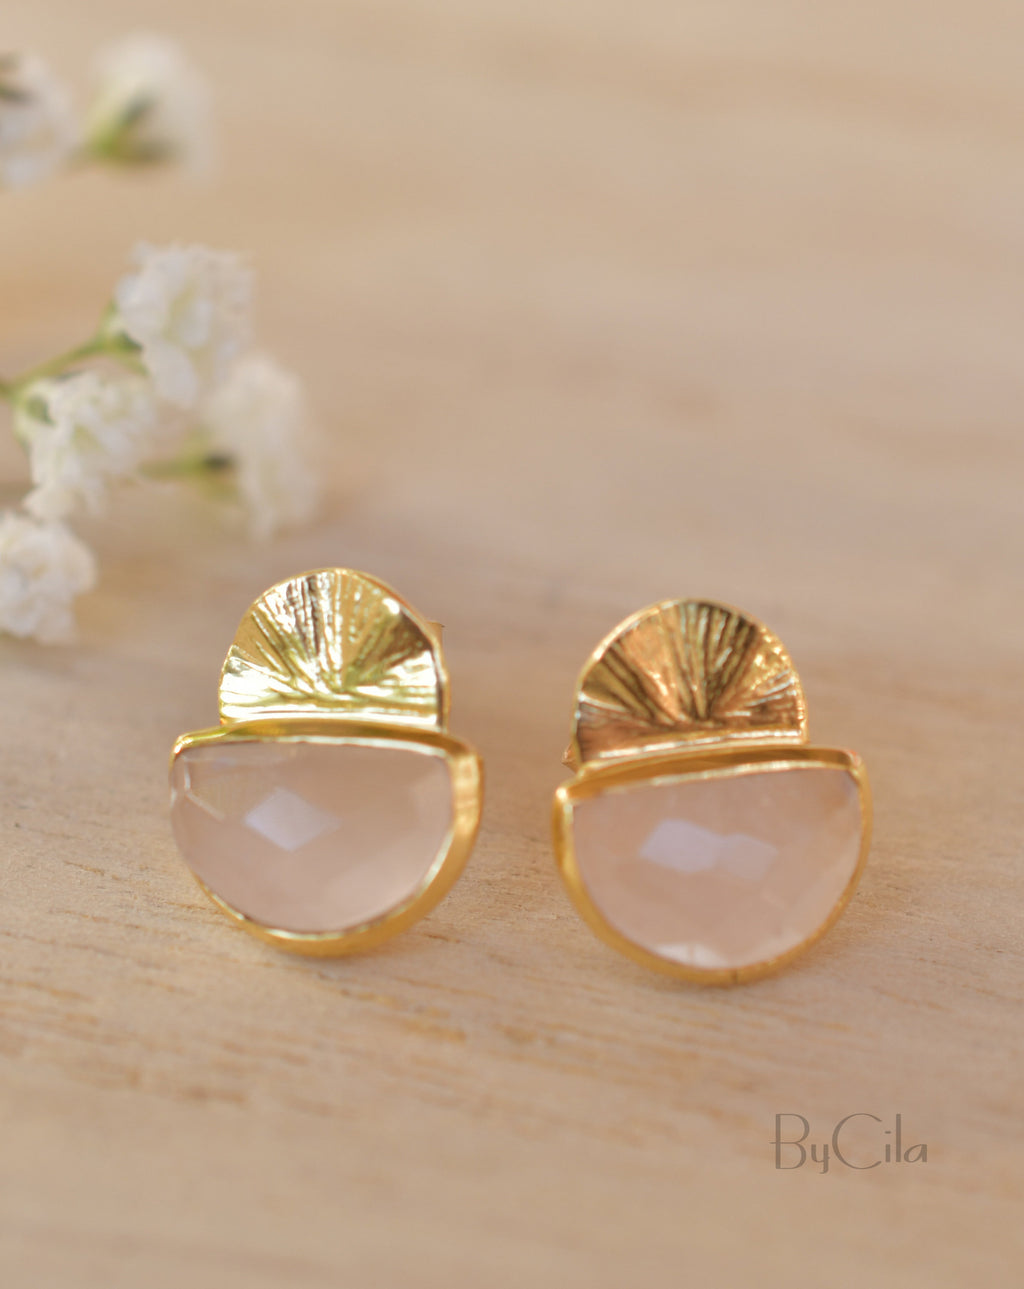 Rose Quartz Stud  Earrings*  Gold Plated 18k * Post * Gemstone * Statement * Everyday * handmade* Lightweight * bohemian * ByCila * BJE160